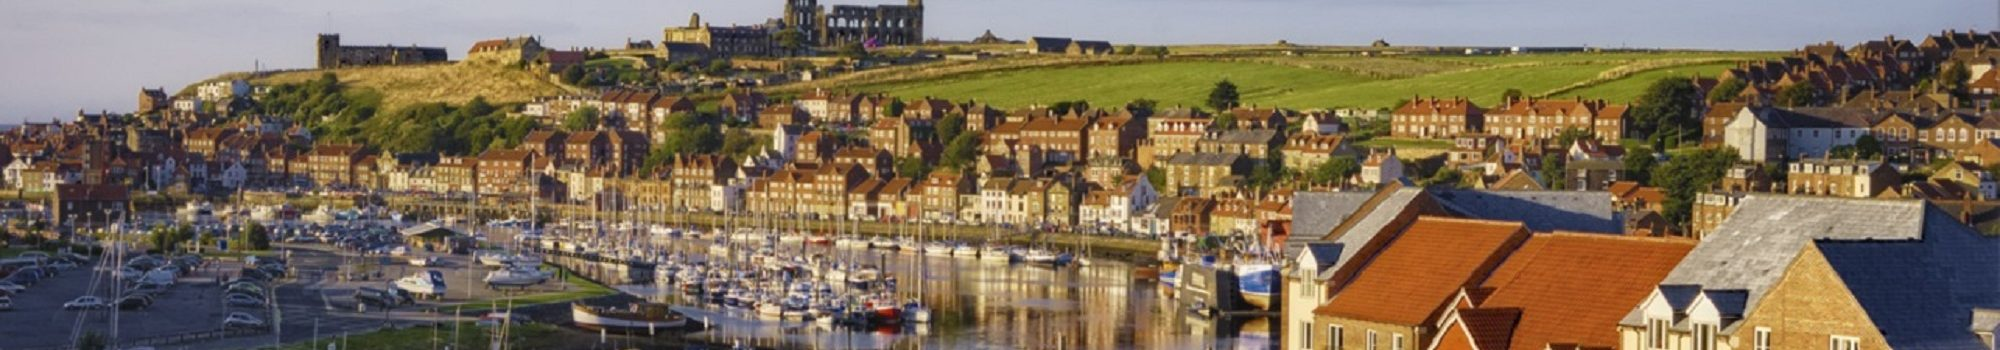 Whitby town and river Esk